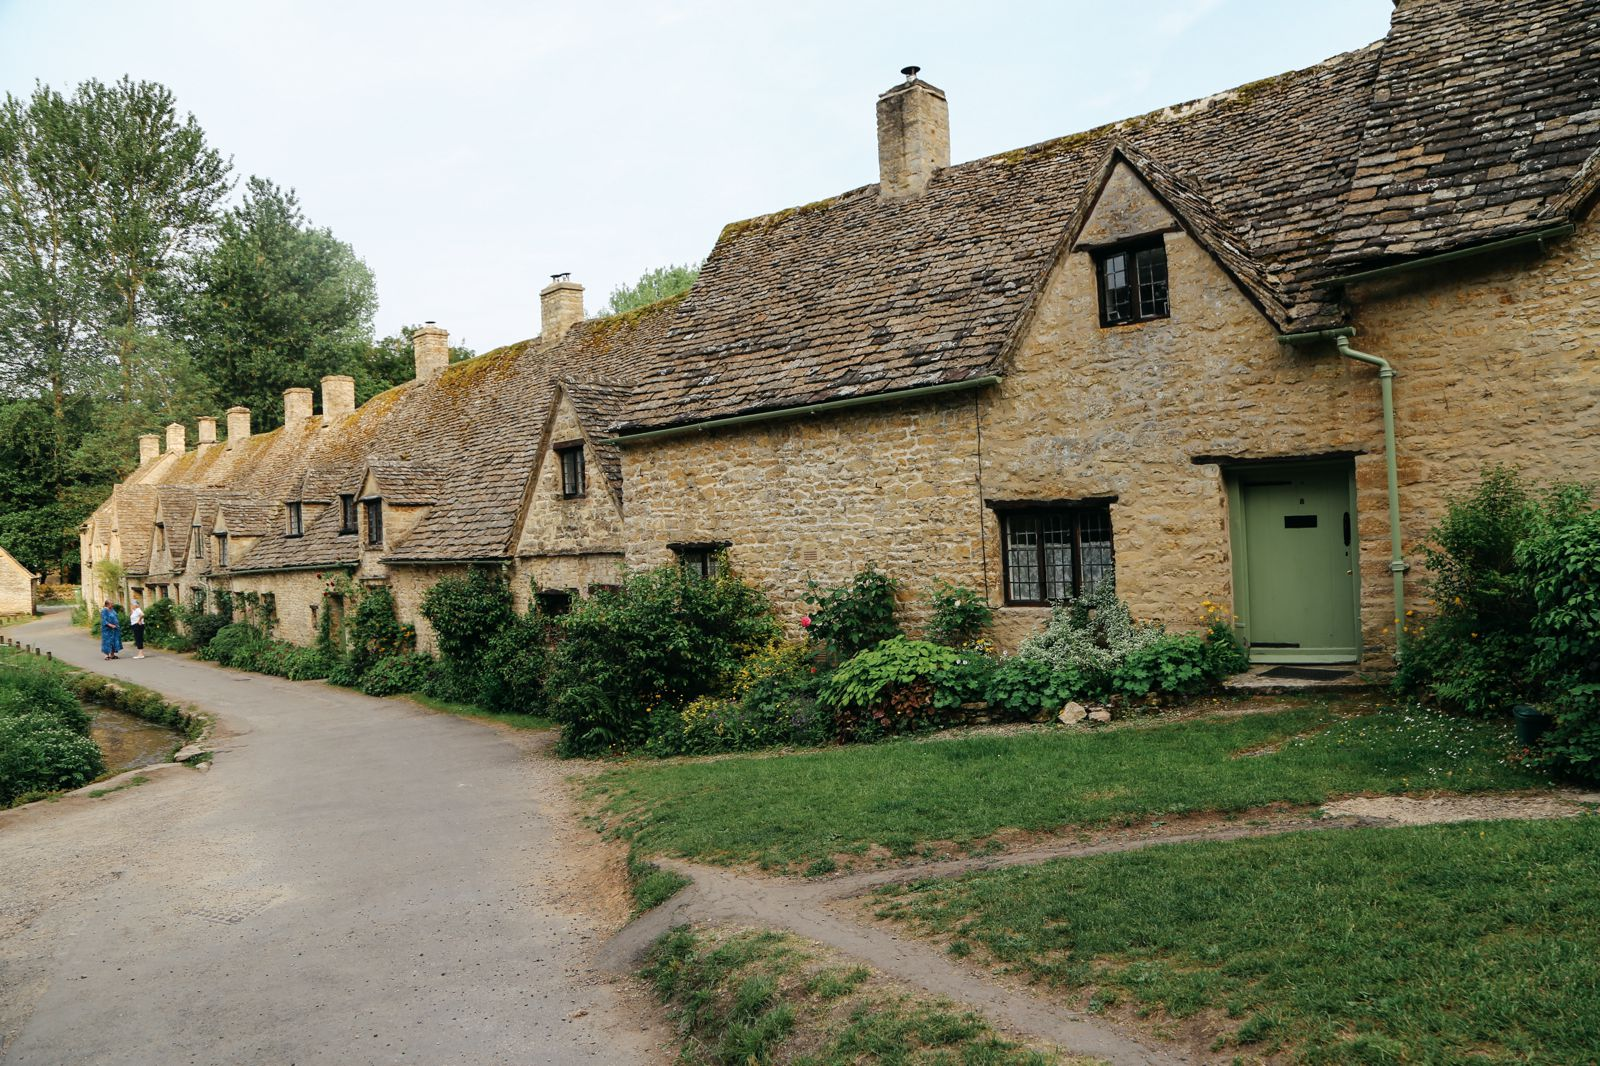 In Search Of The Most Beautiful Street In England - Arlington Row, Bibury (25)